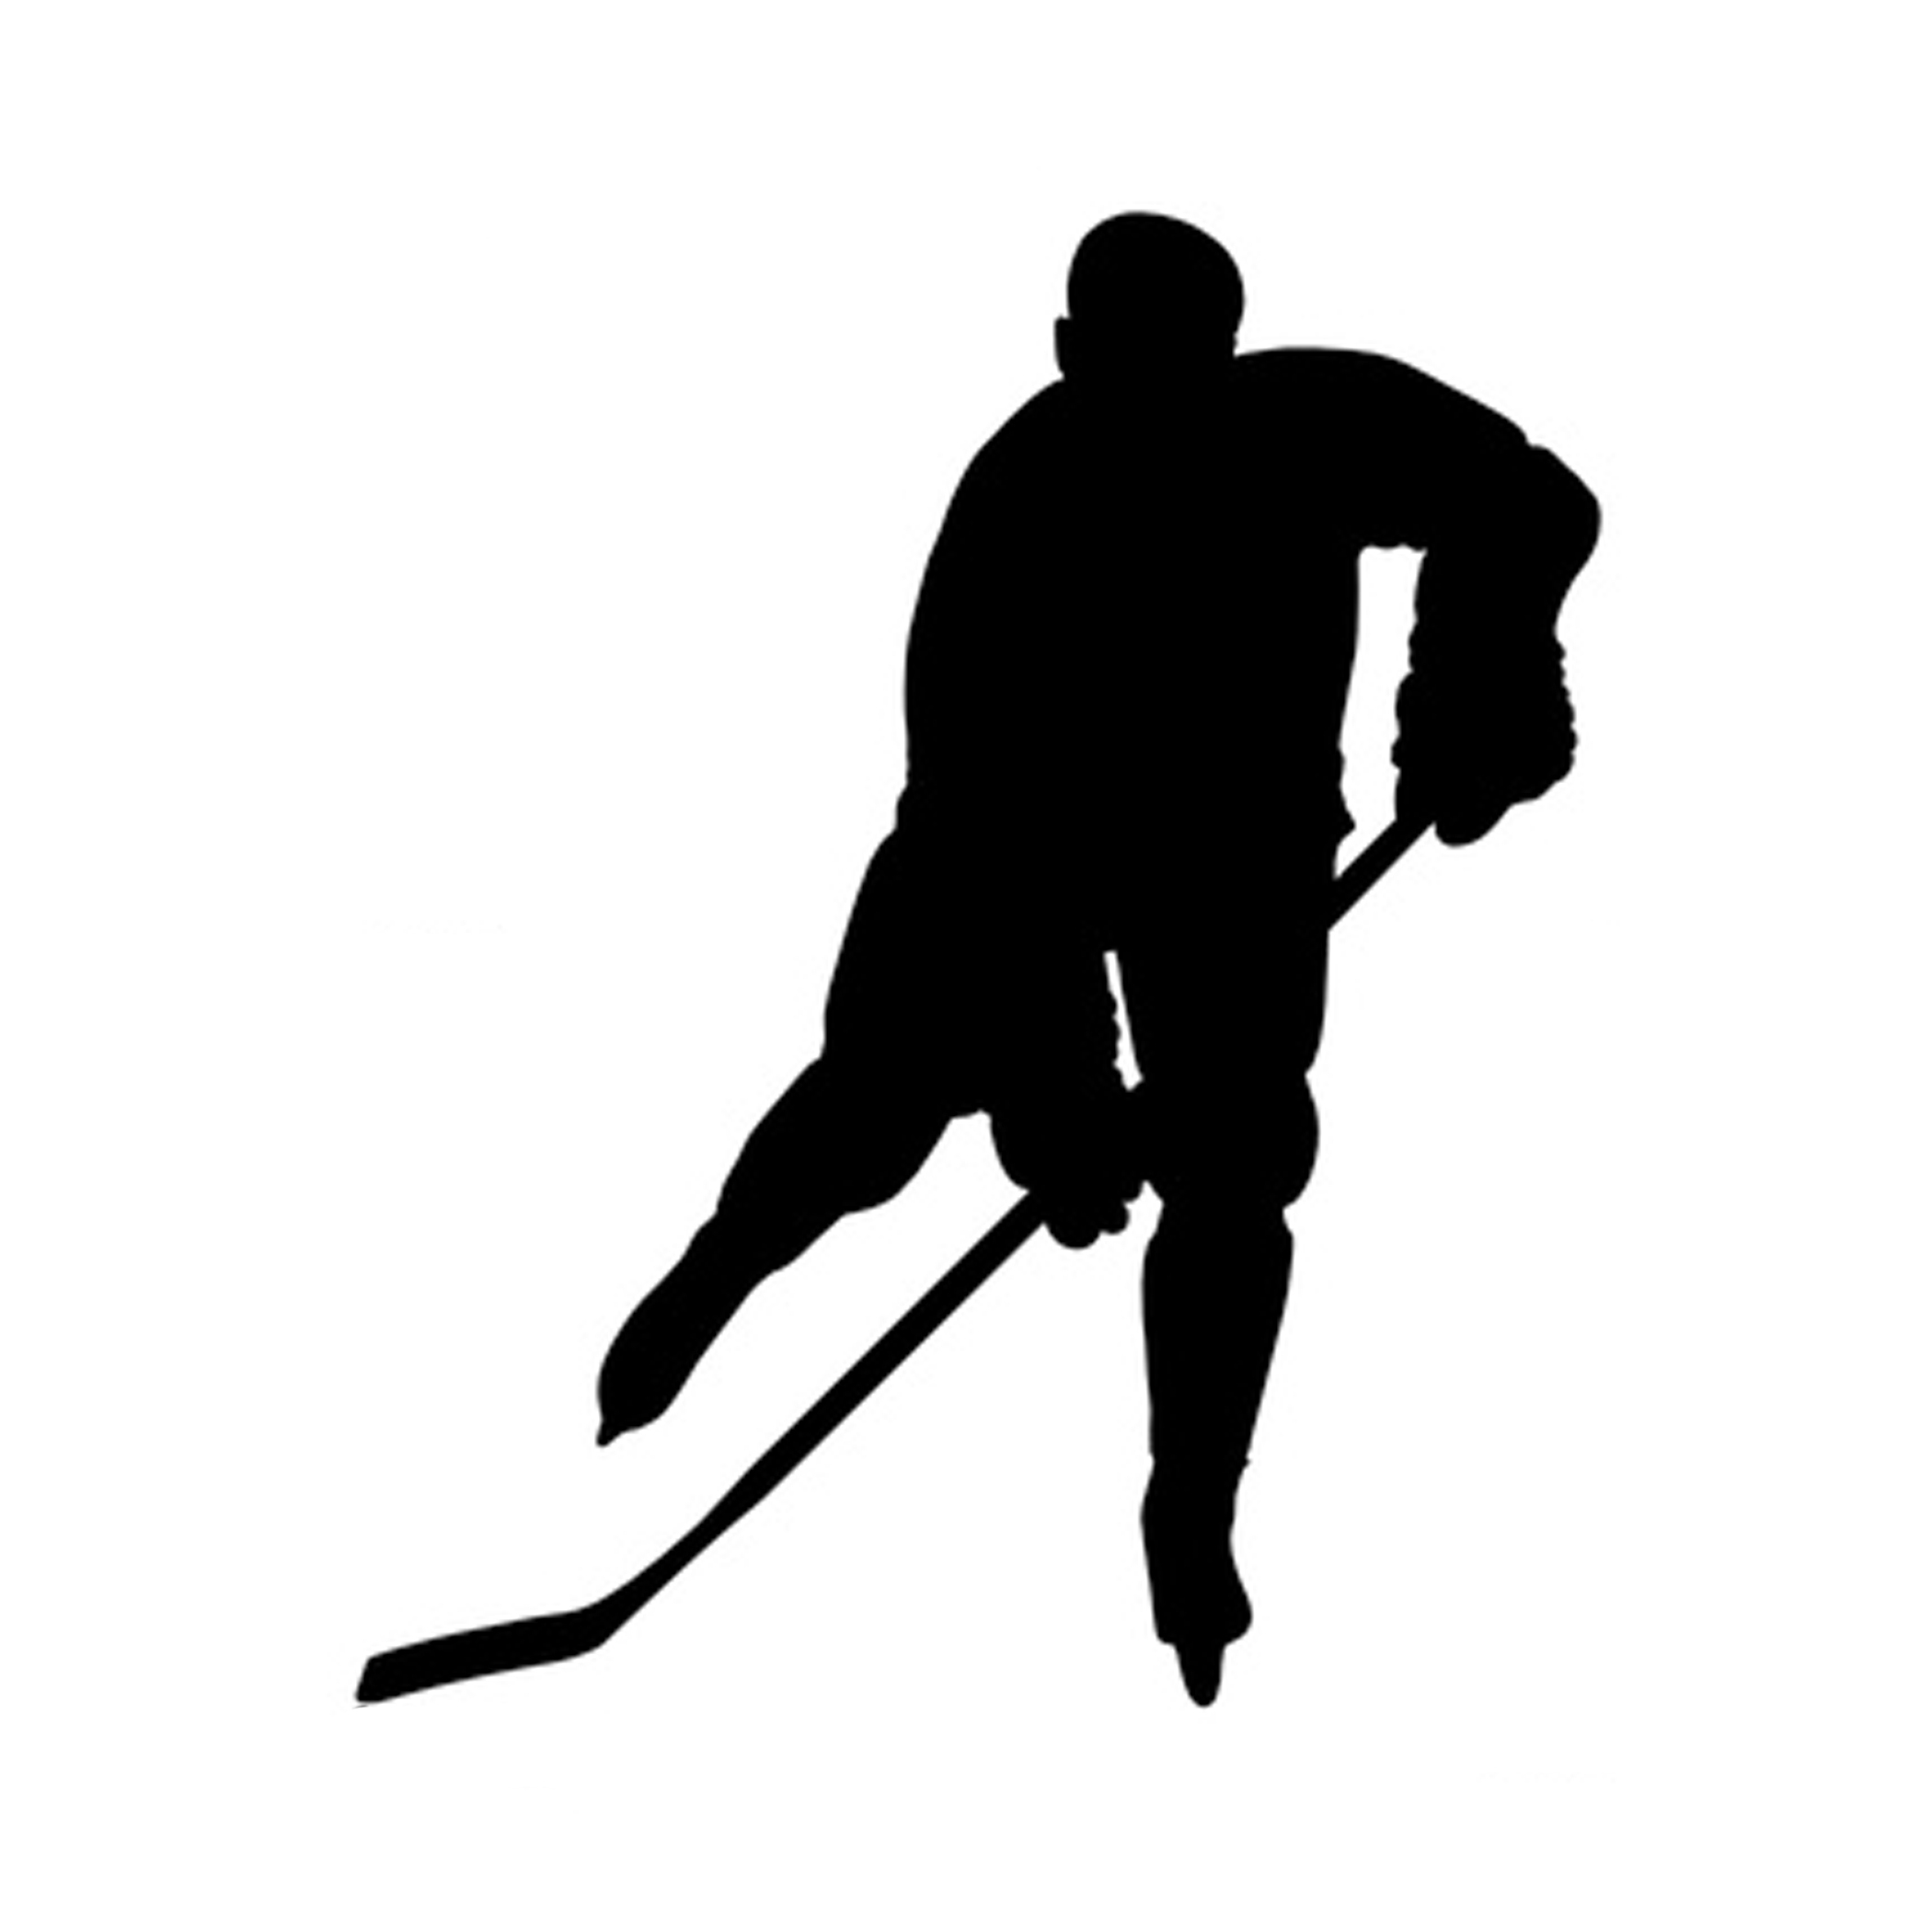 2100x2100 Clip Art Hockey Player Vector Silhouette I8mkbgv